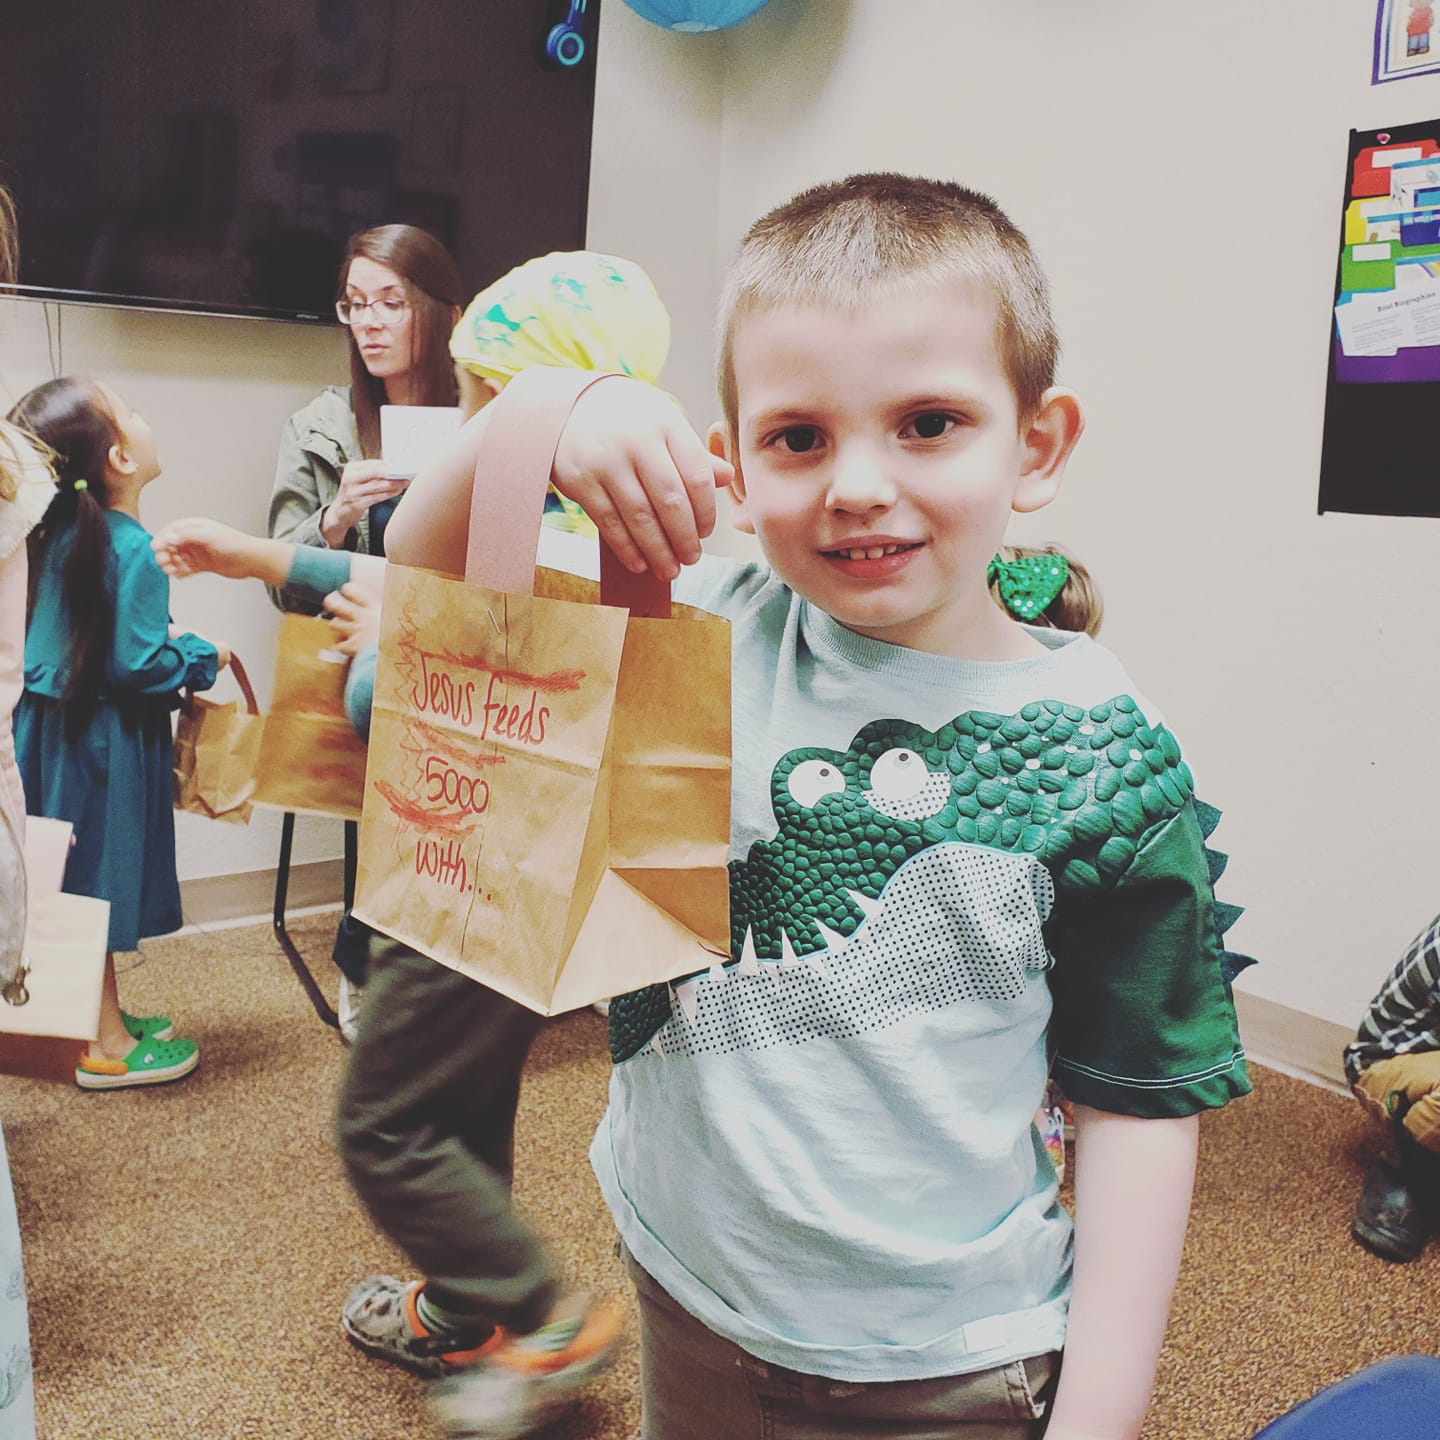 A child holding up a bag in a children's class